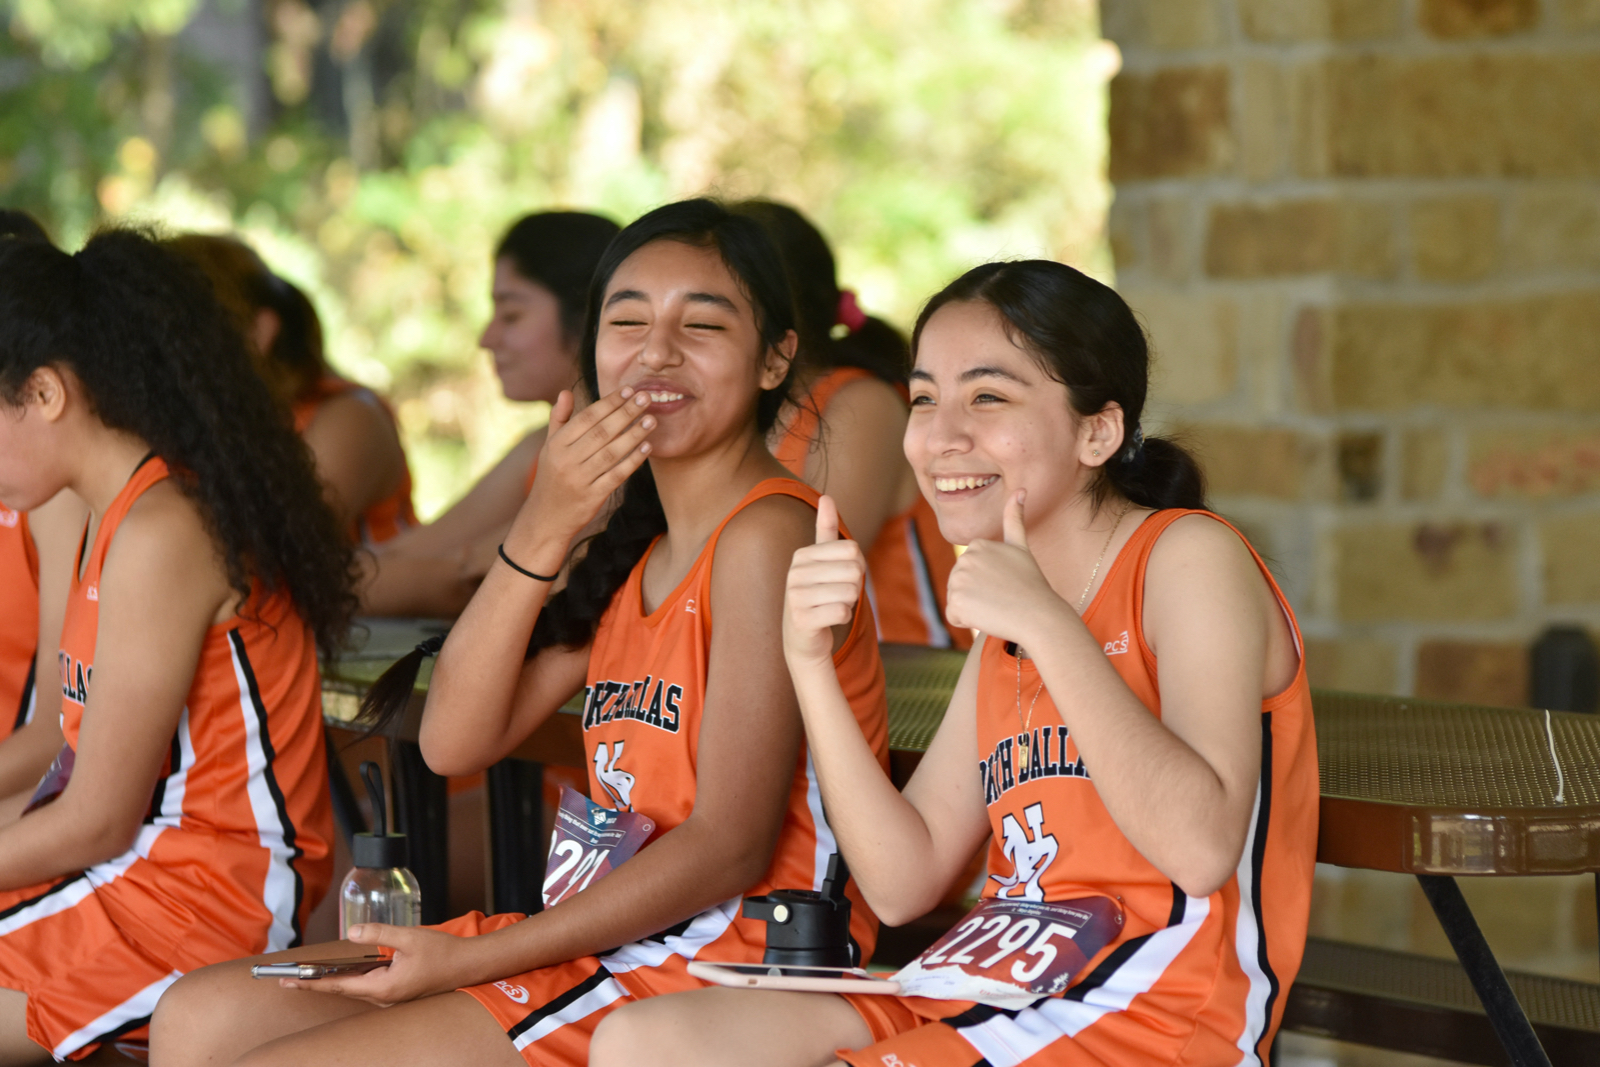 Photo gallery: North Dallas cross country runners at Camp Rorie — Oct. 10, 2020